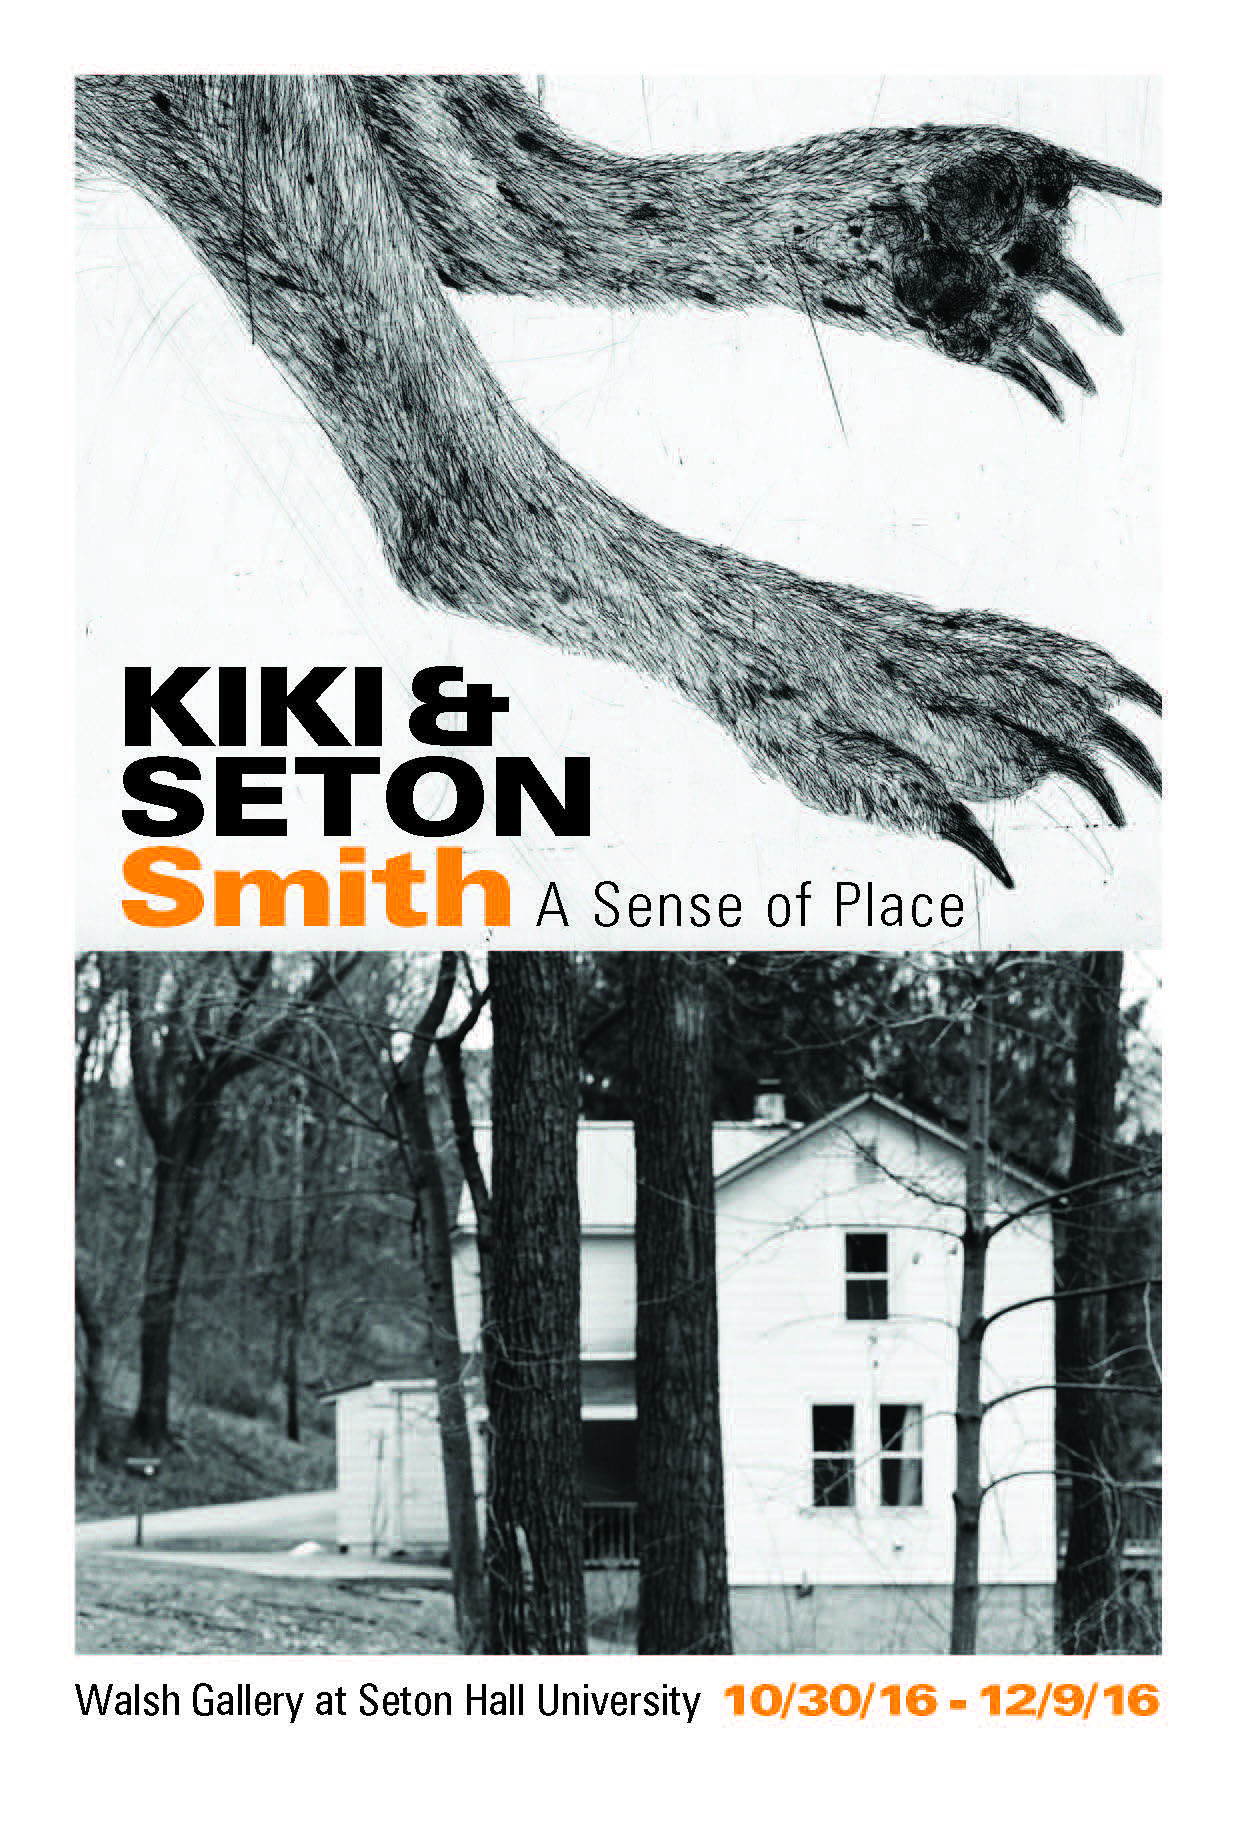 Kiki and Seton Smith: A Sense of Place